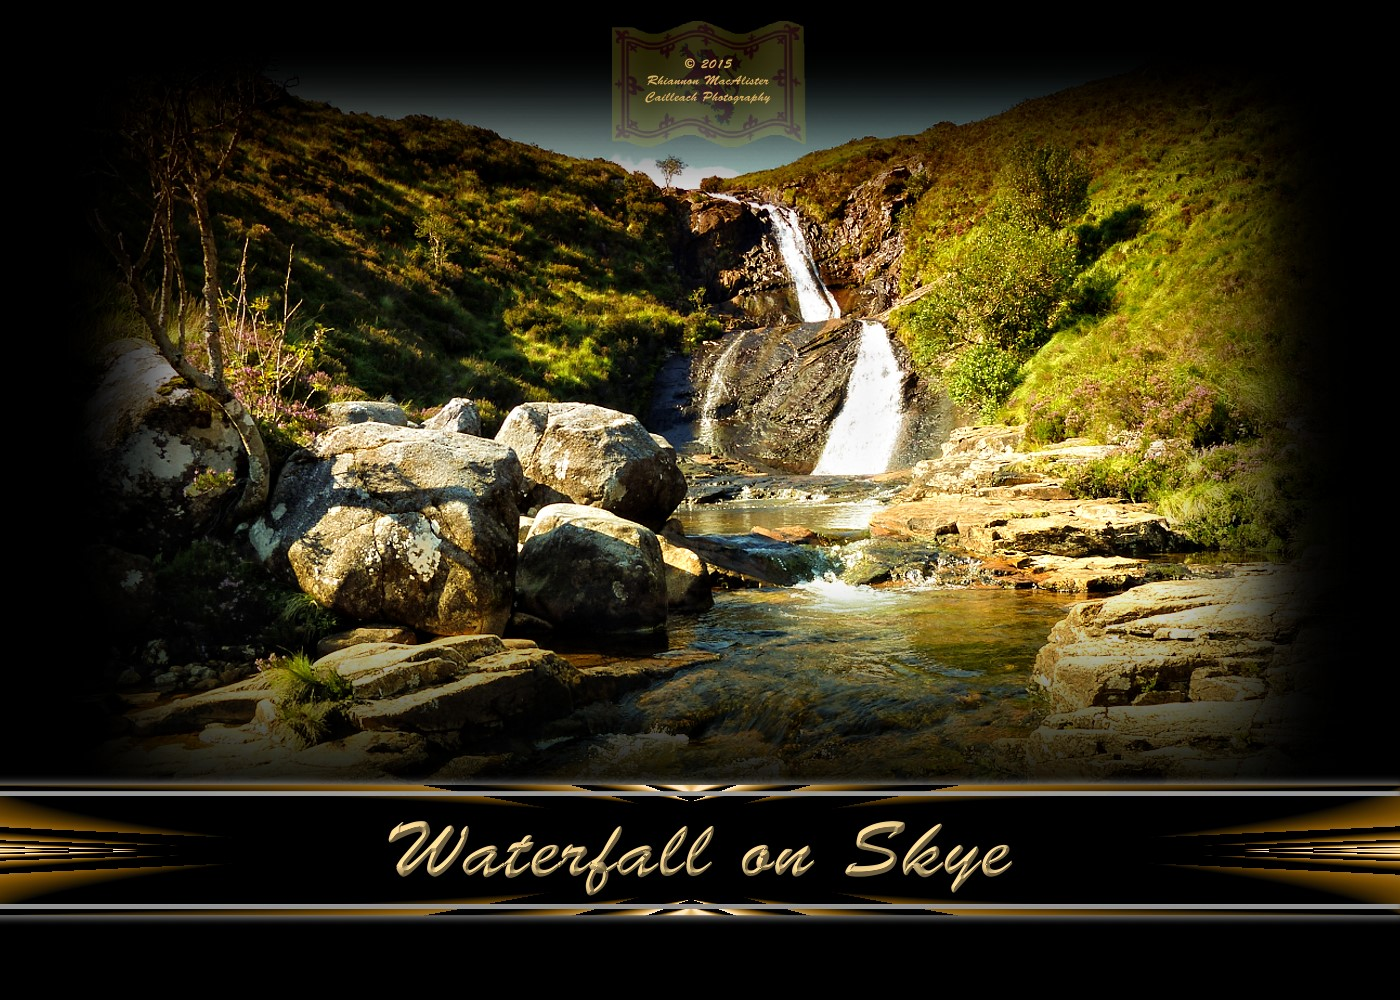 Waterfall on Skye